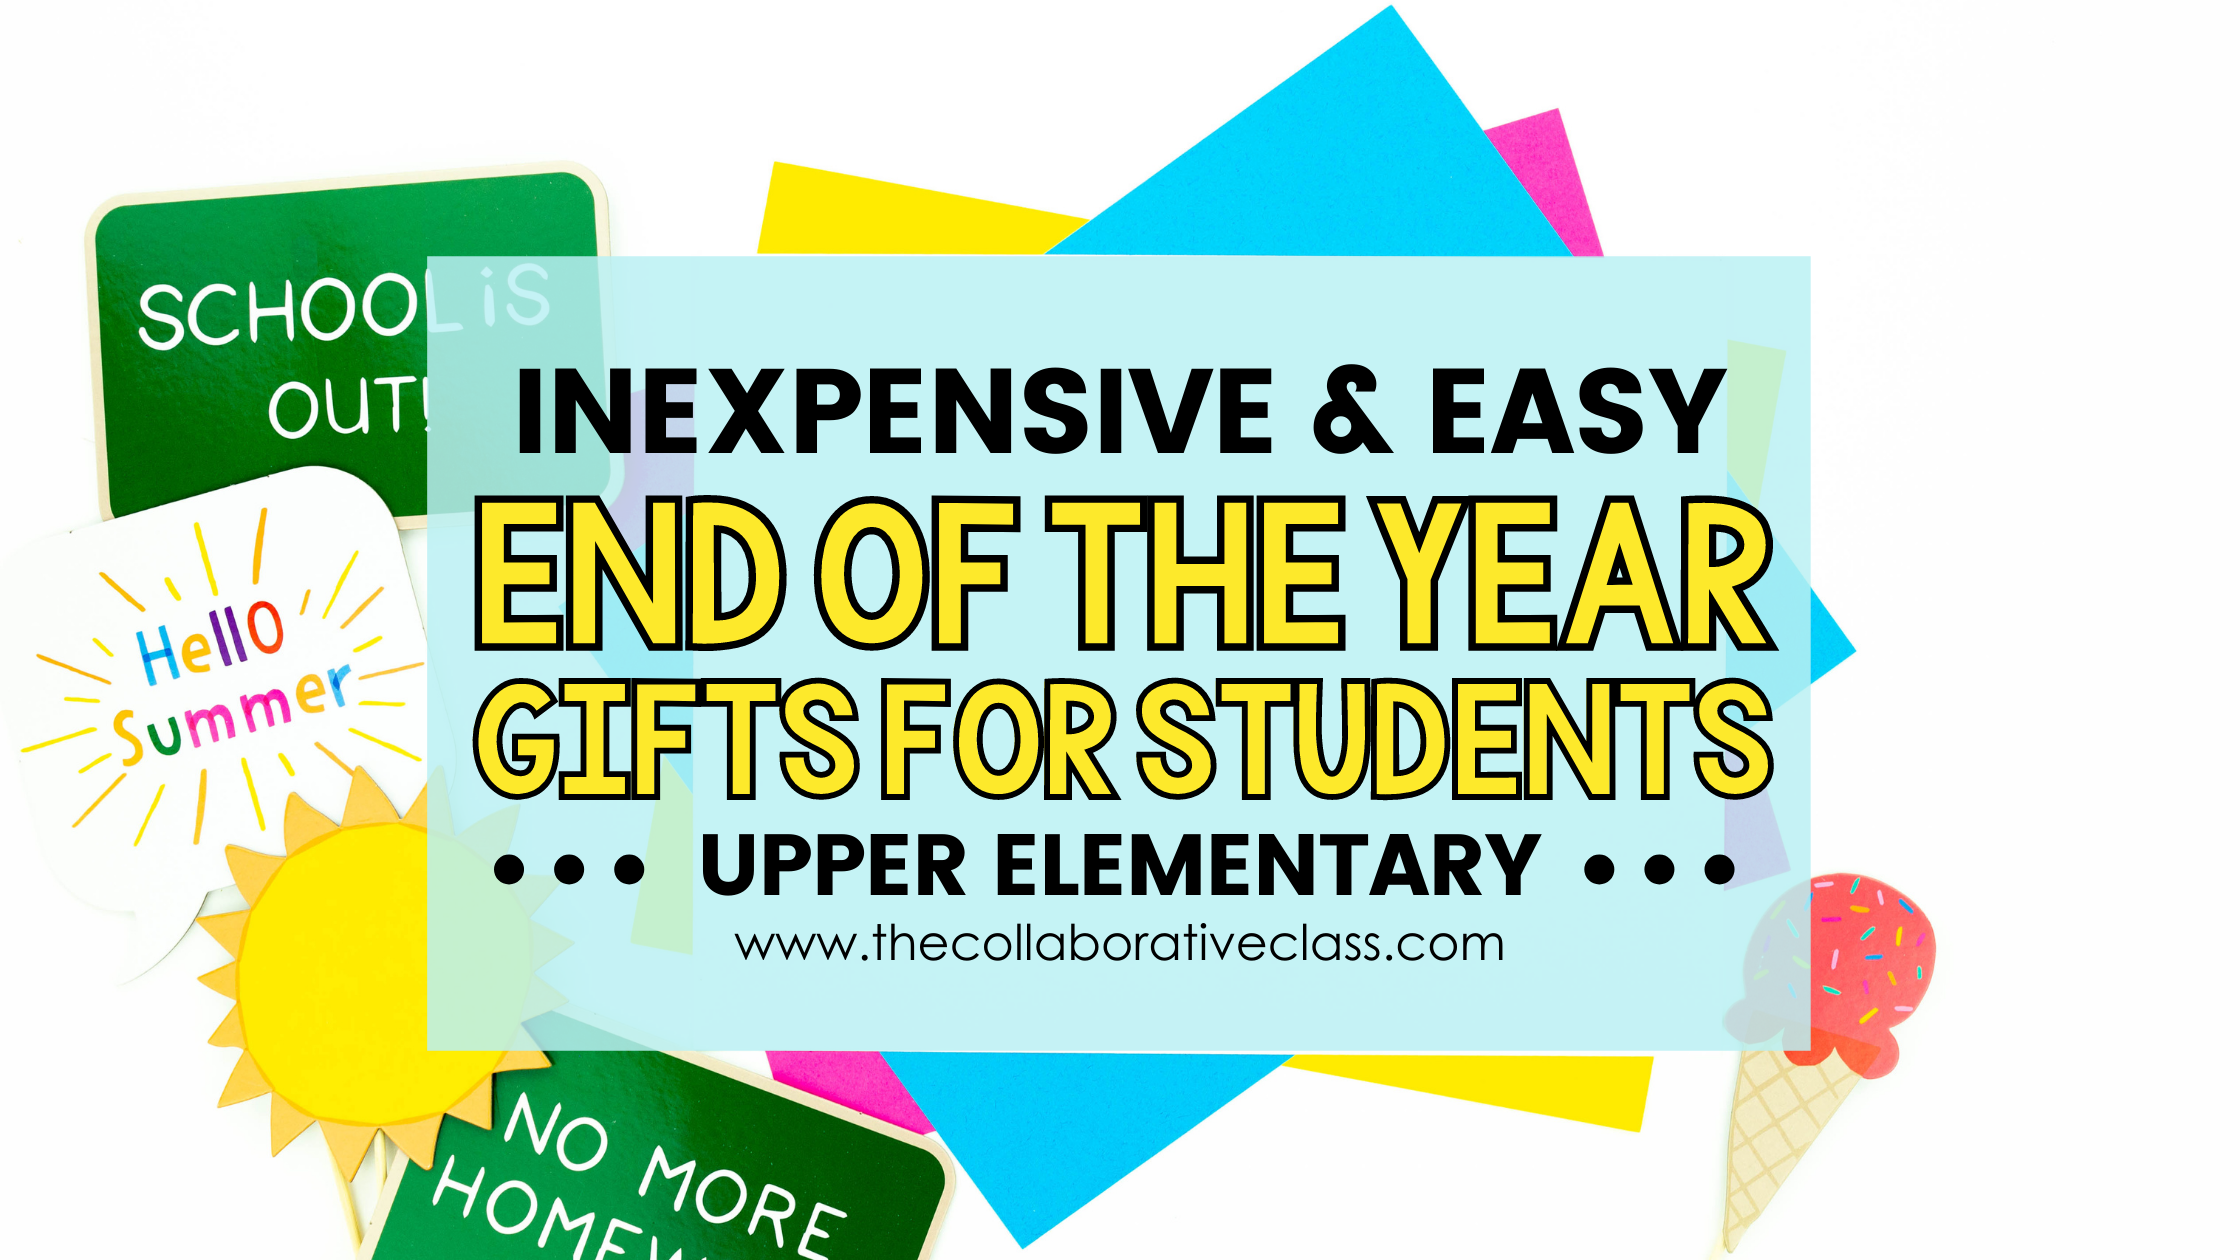 Inexpensive & Easy End of the Year Gifts for Students